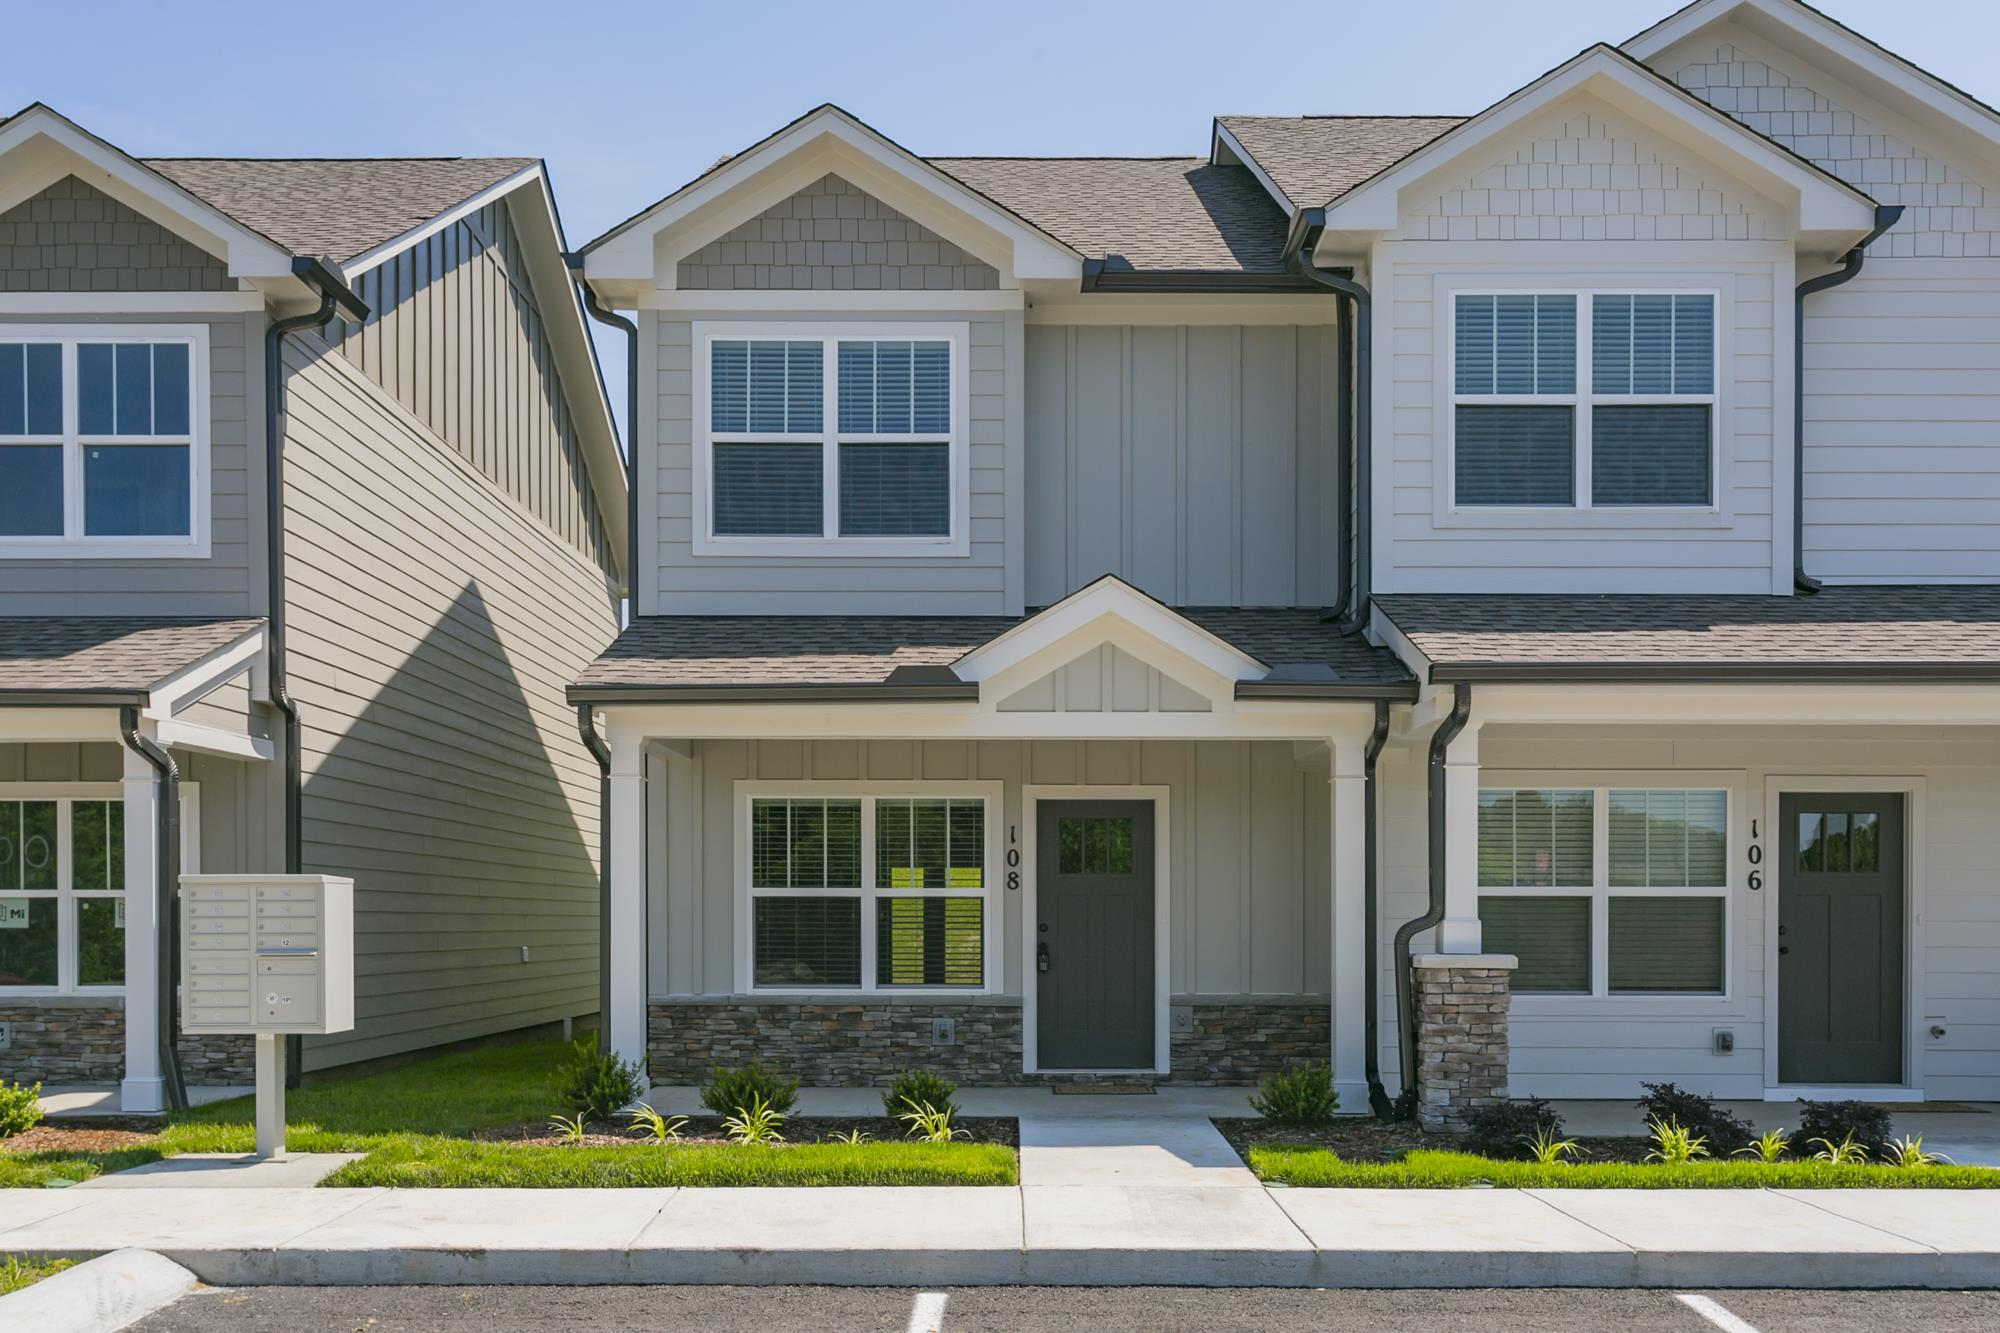 206 Bell Forge Ct, White Bluff, TN 37187 - White Bluff, TN real estate listing